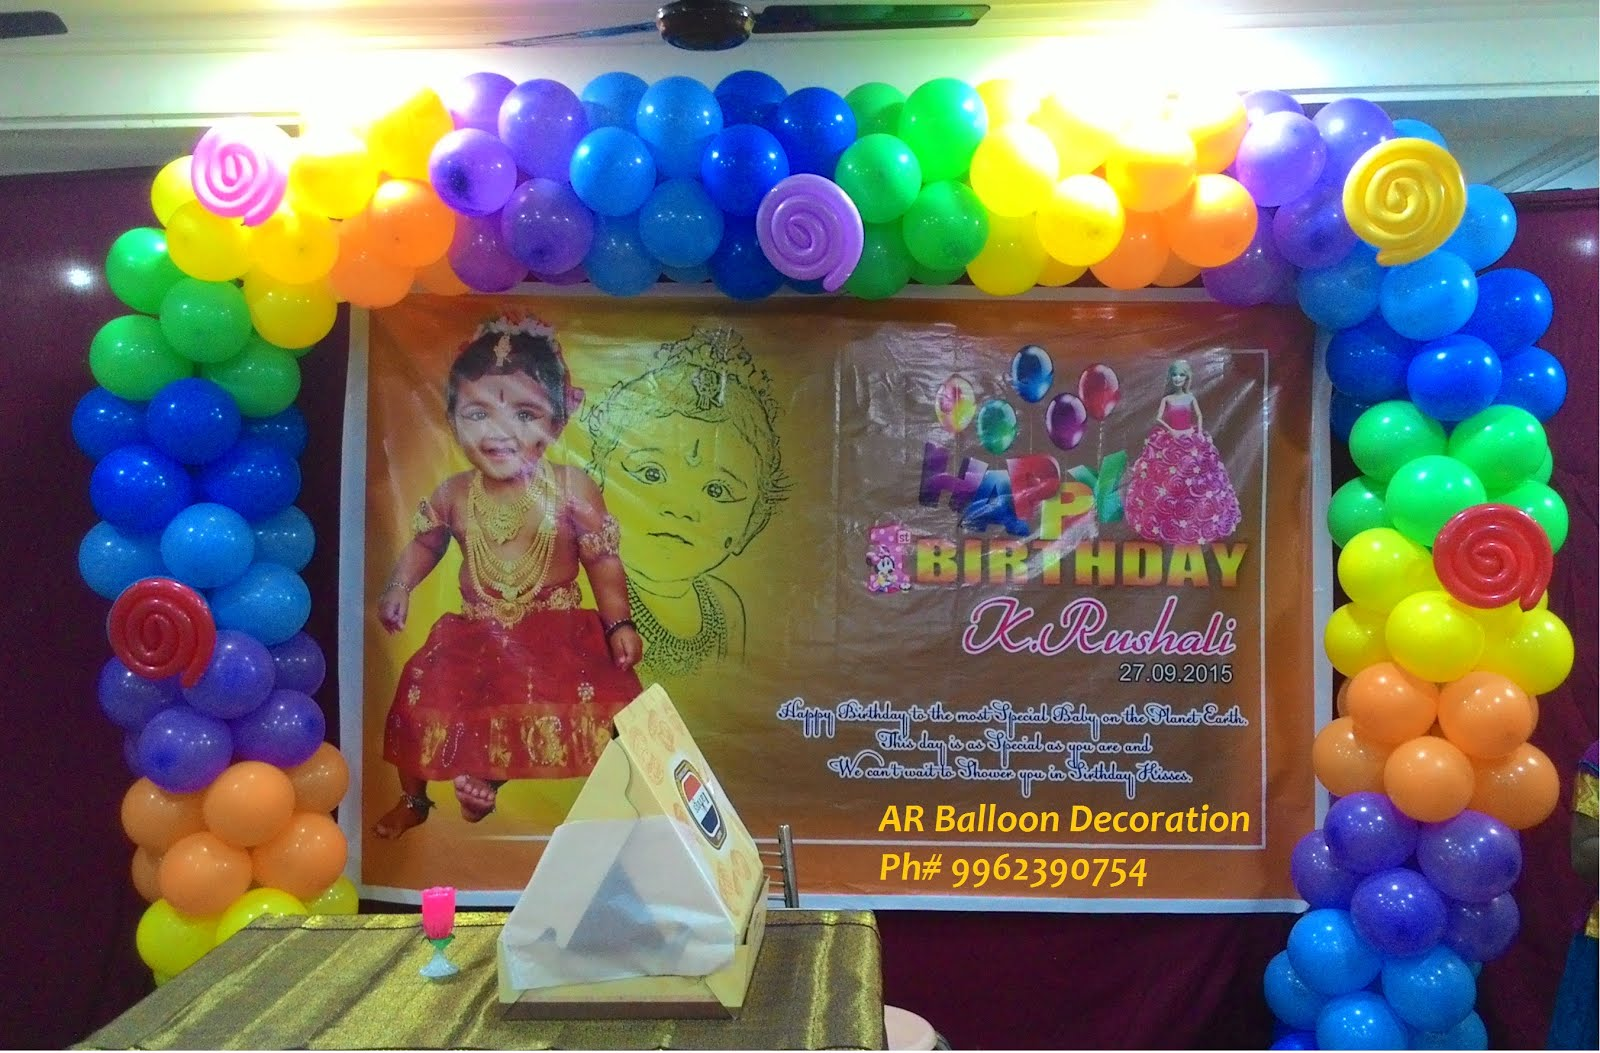 Ar balloon decoration the best balloon decorations in for Balloon decoration in chennai